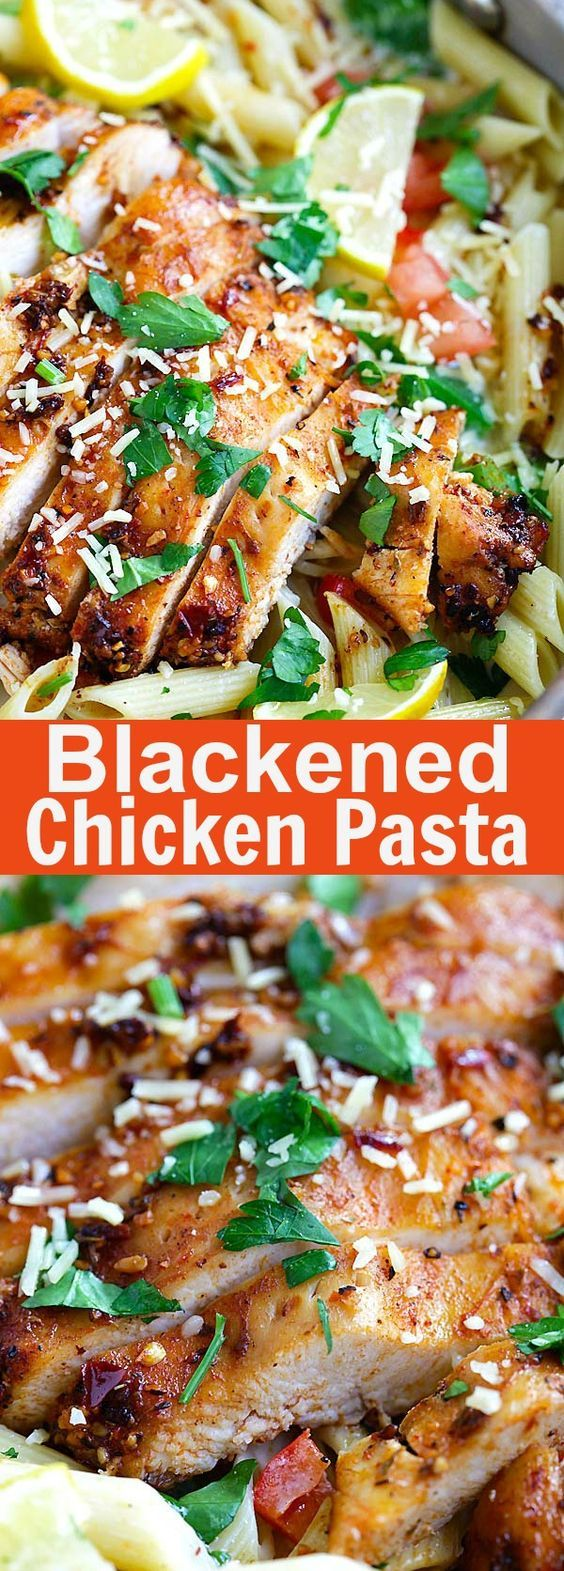 Blackened Chicken Pasta - Creamy pasta with spicy blackened spice chicken breast. Family friendly dinner has never been so good | rasamalaysia.com